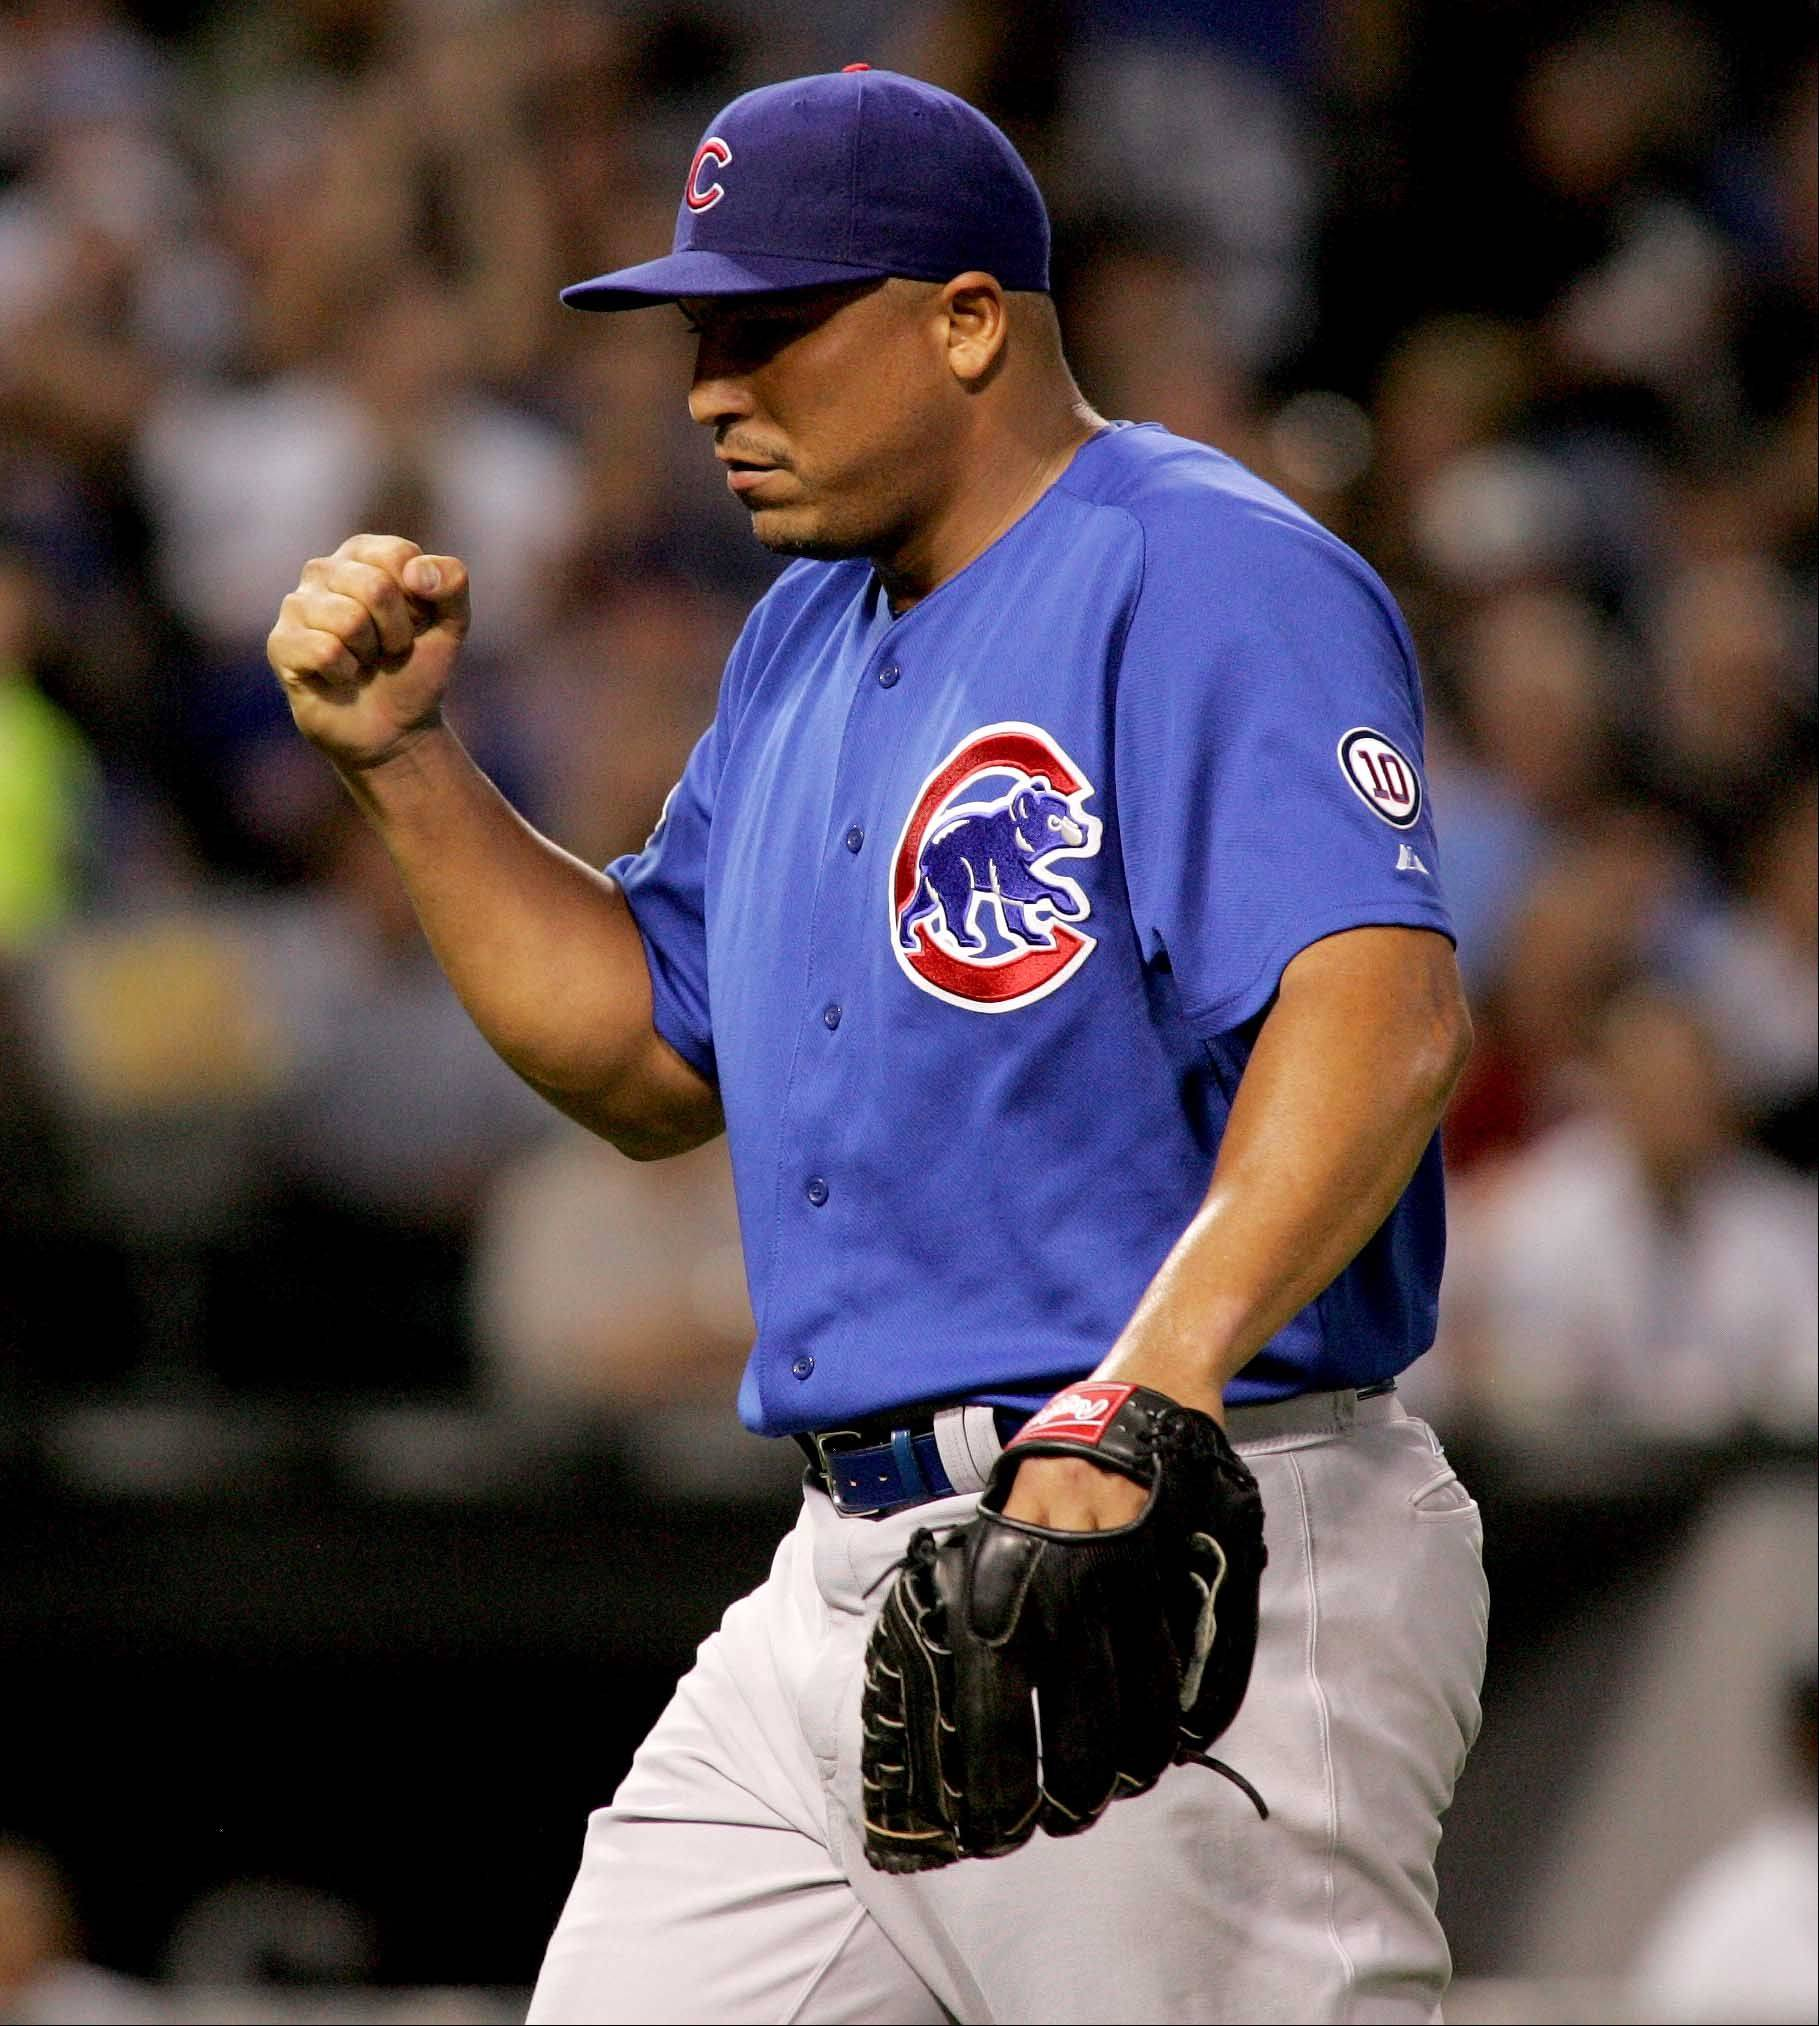 Carlos Zambrano reacts after striking out Paul Konerko.